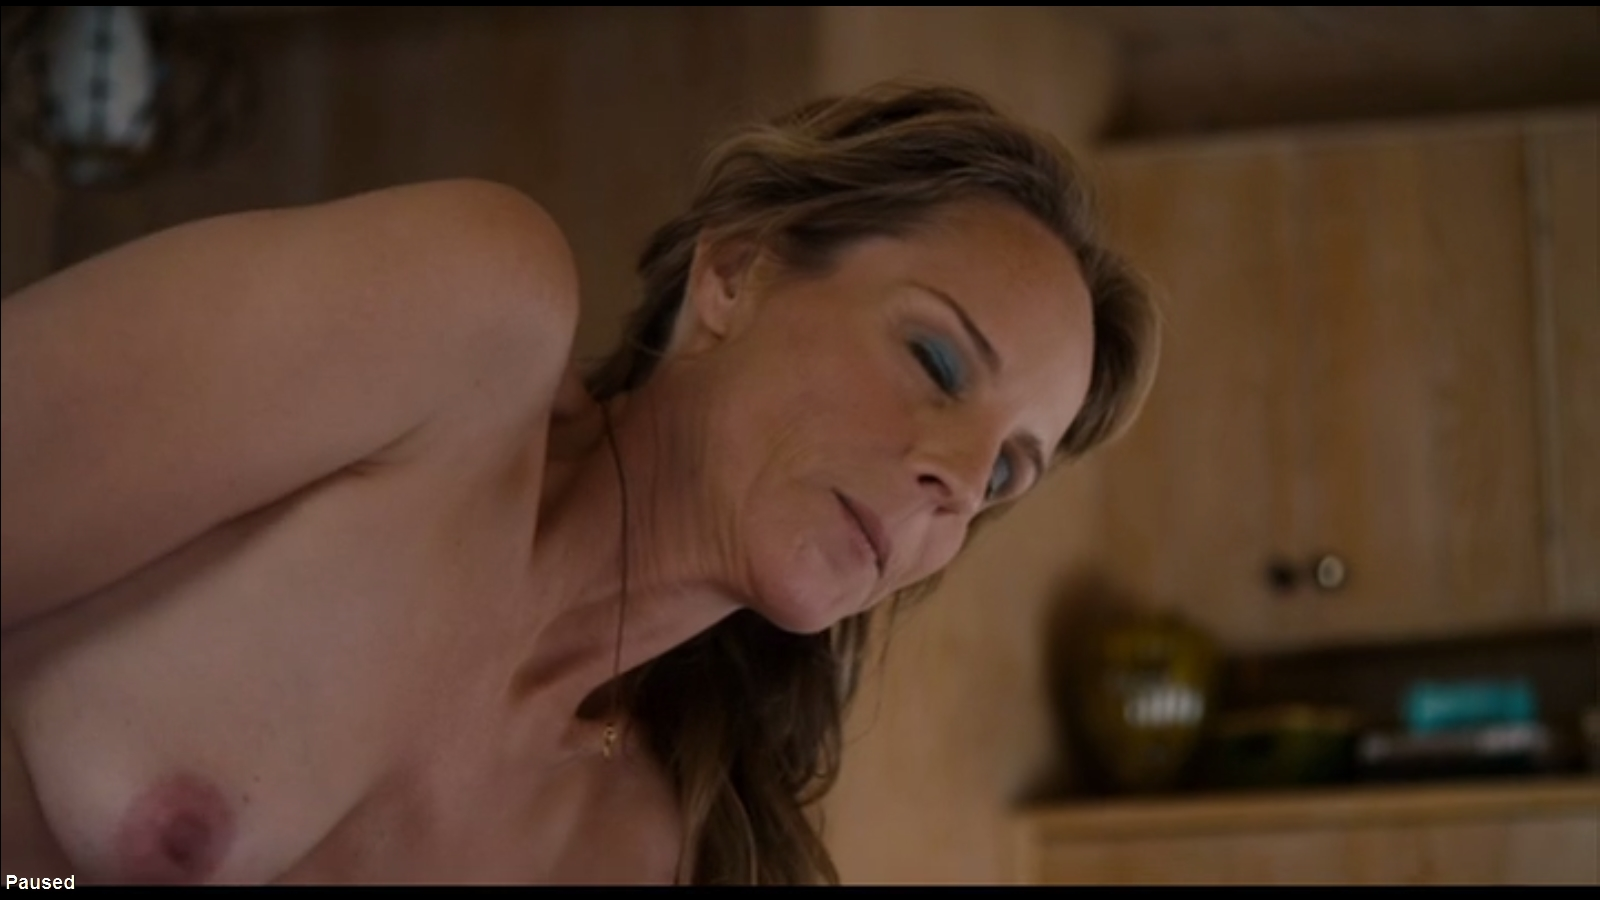 Helen hunt plays a sex surrogate for a man with polio in new picture based on true story